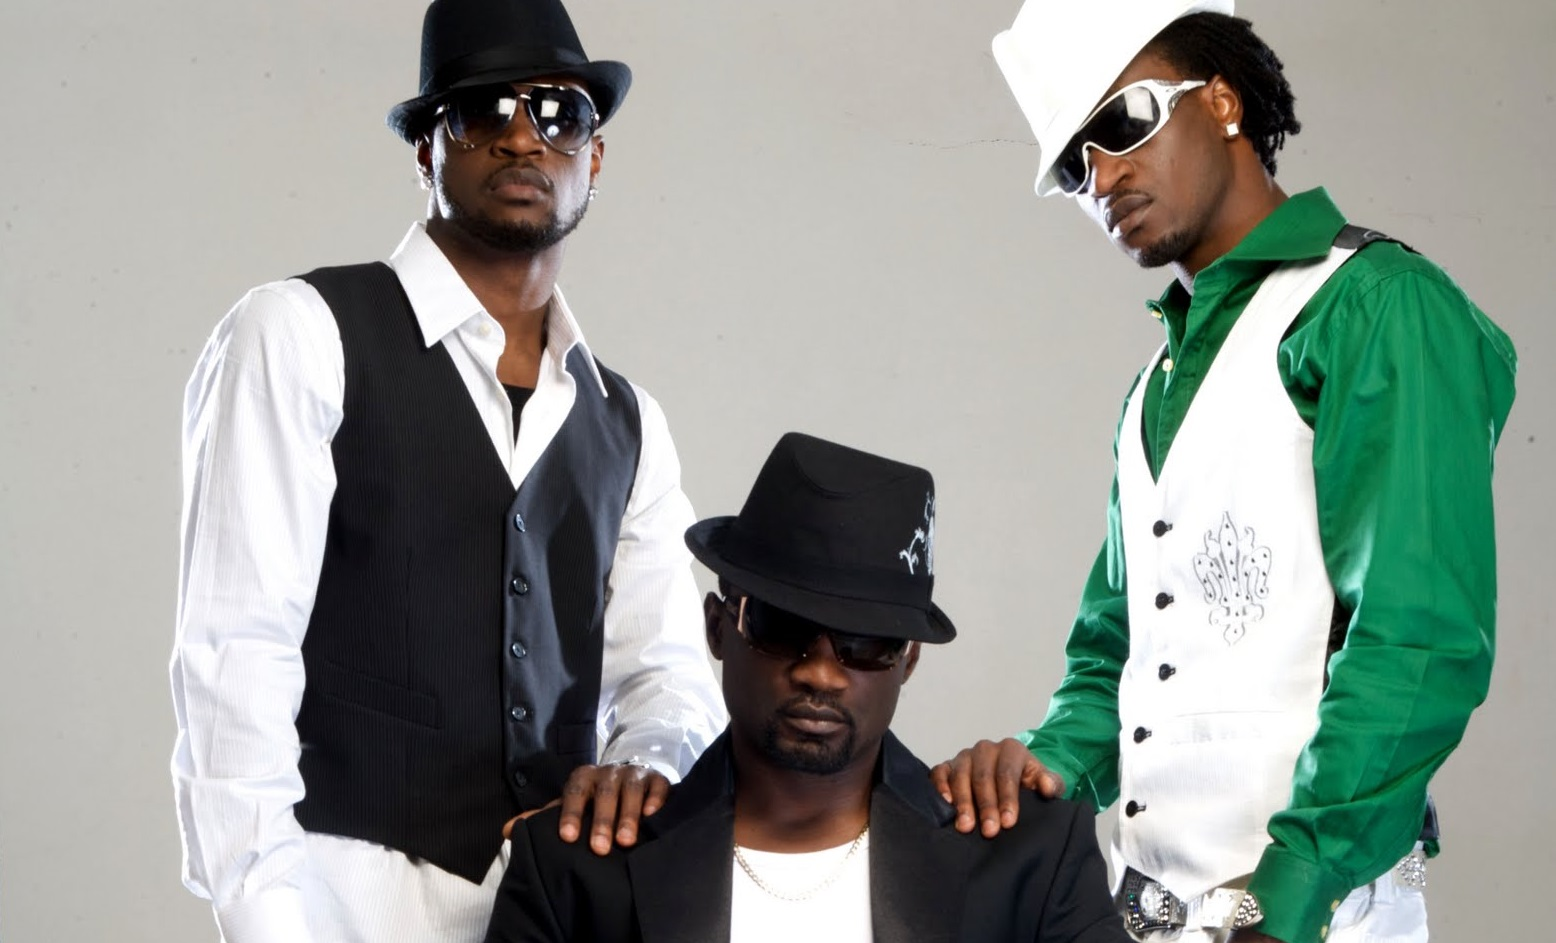 P-square brothers posong